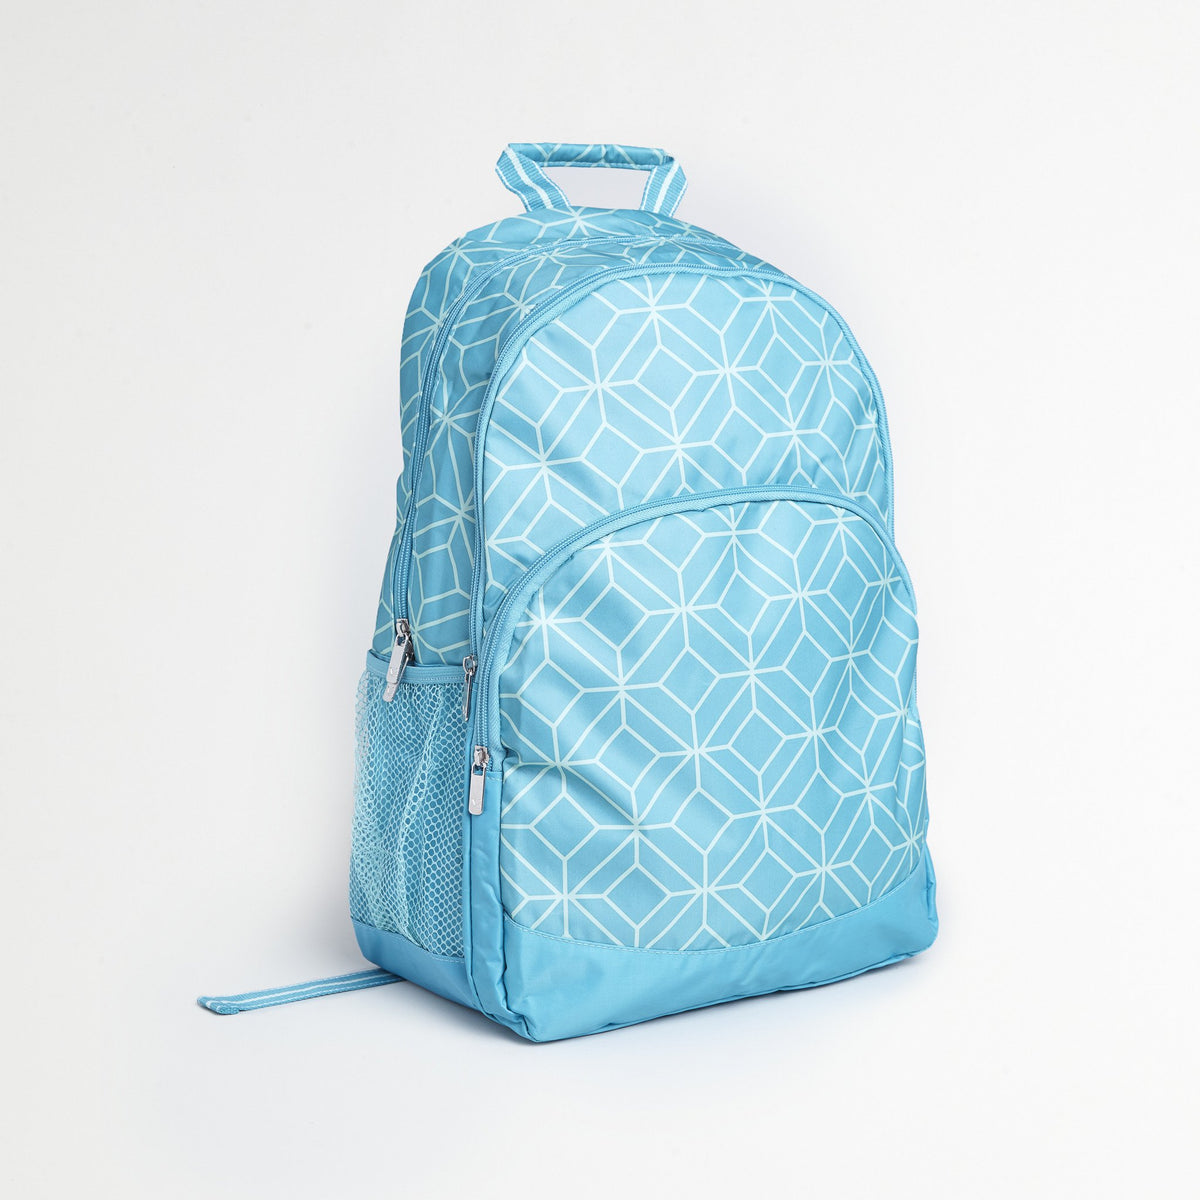 Turquoise Gem Backpack